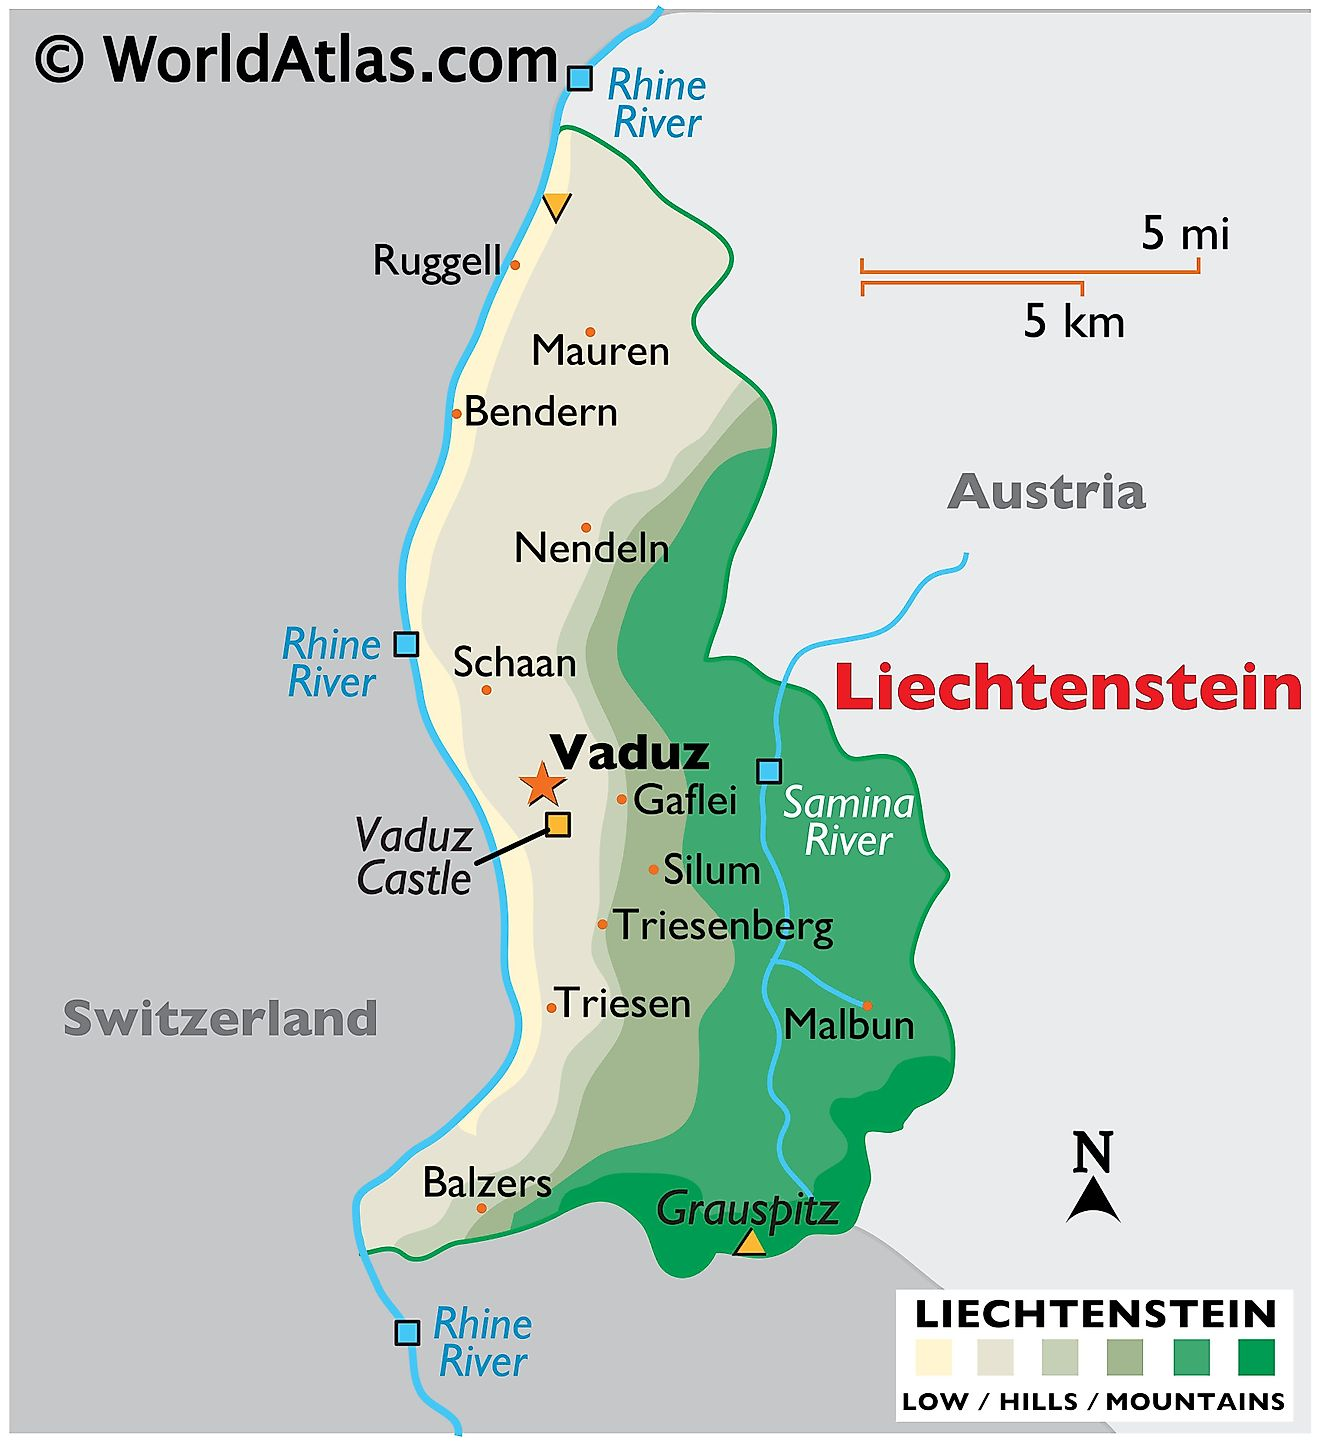 Physical Map of Liechtenstein showing terrain, highest and lowest points, major rivers, international boundaries, etc.